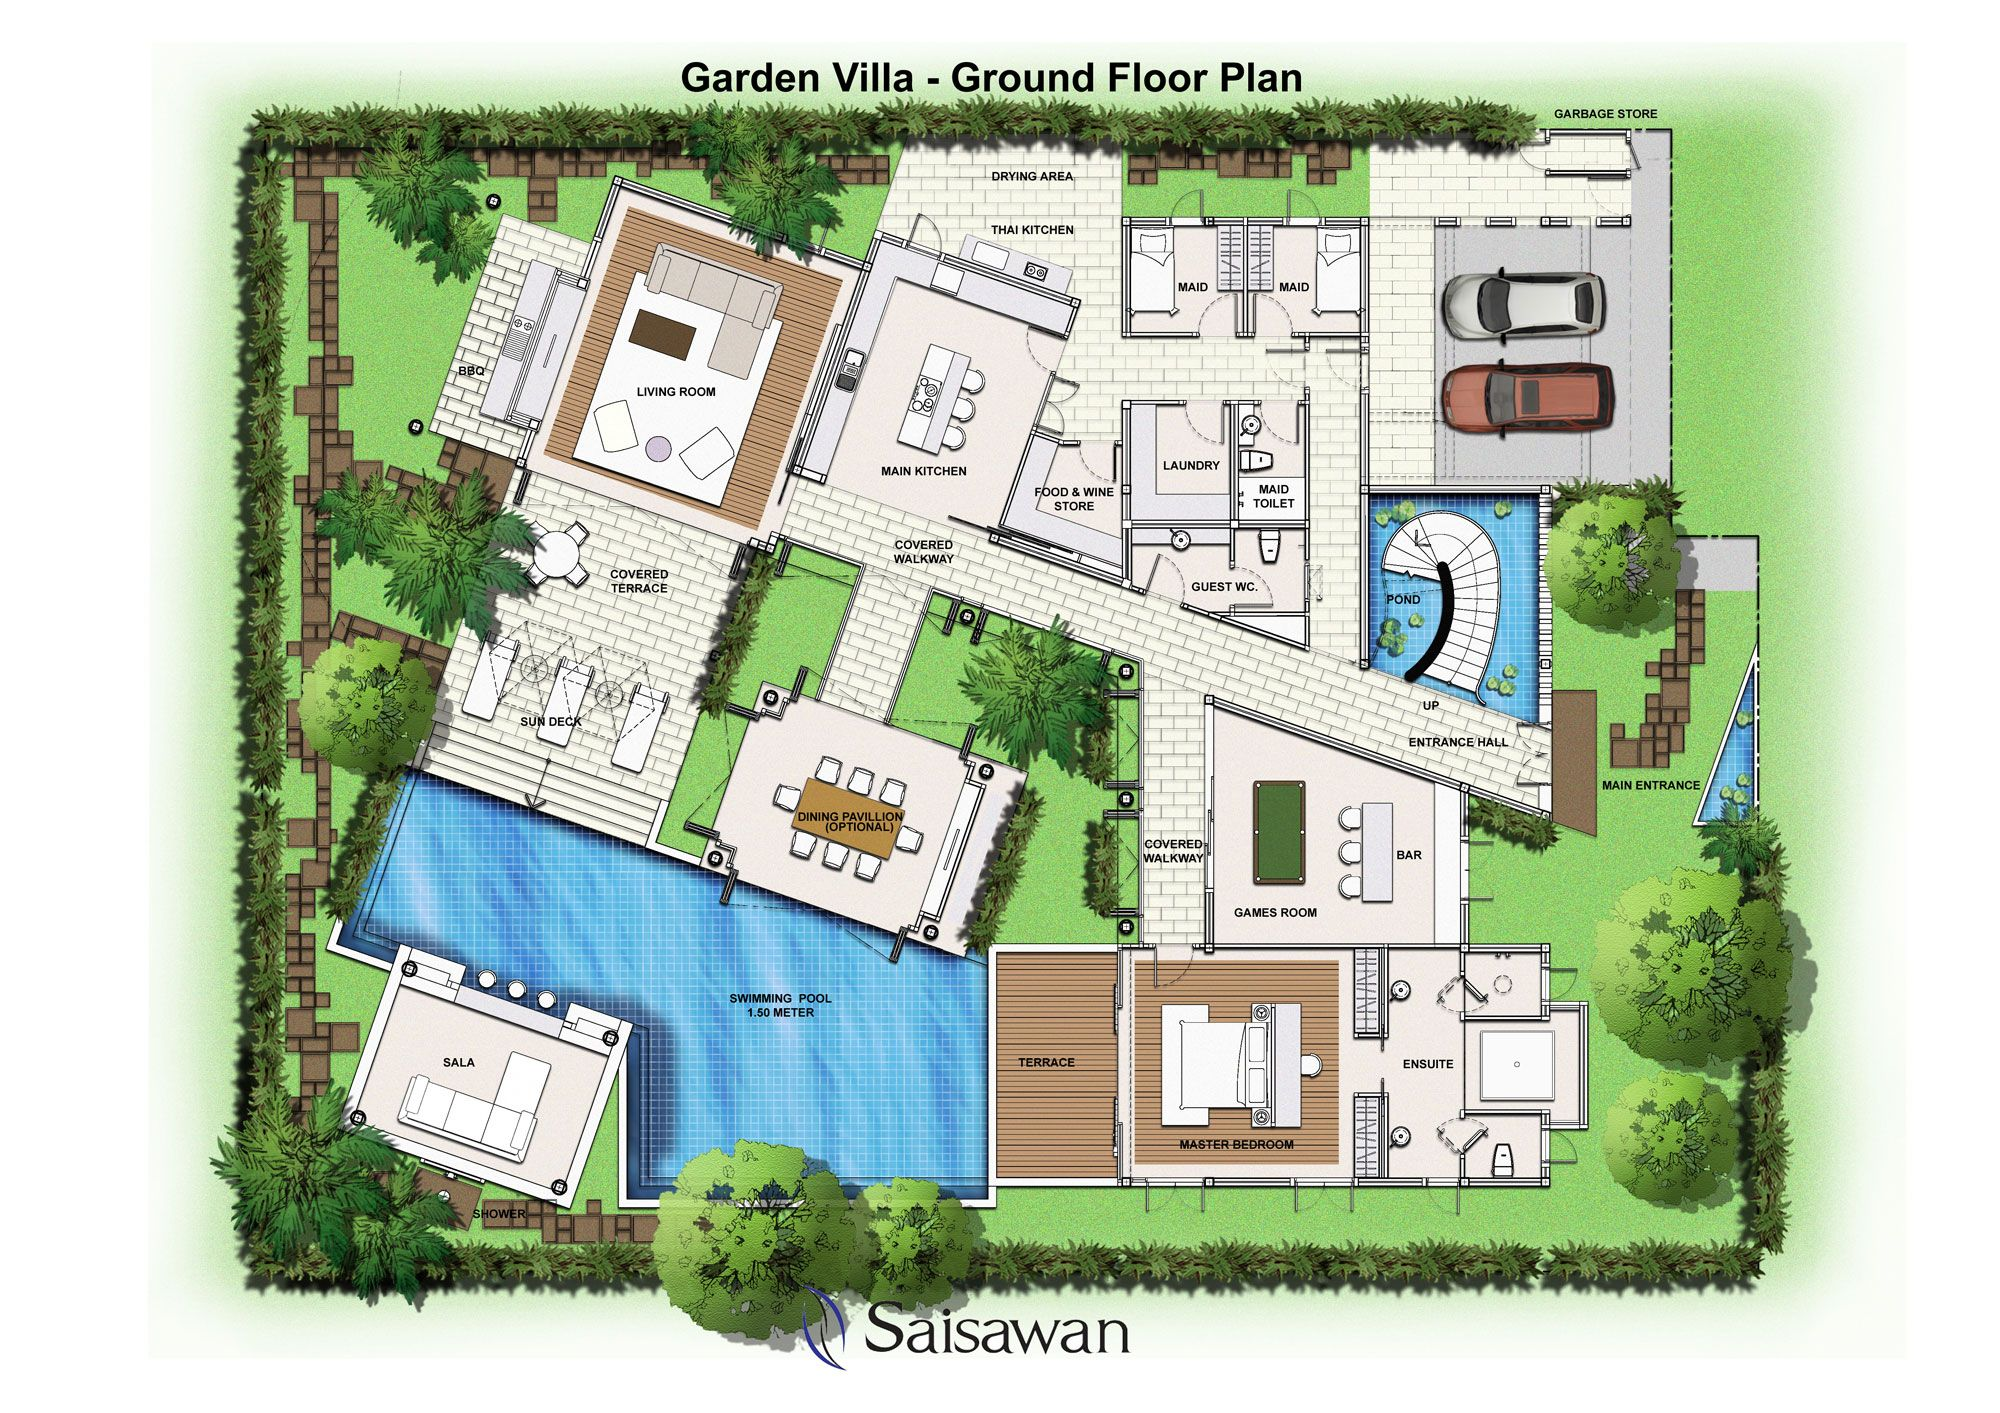 Saisawan garden villas ground floor plan house plans for Best house garden design